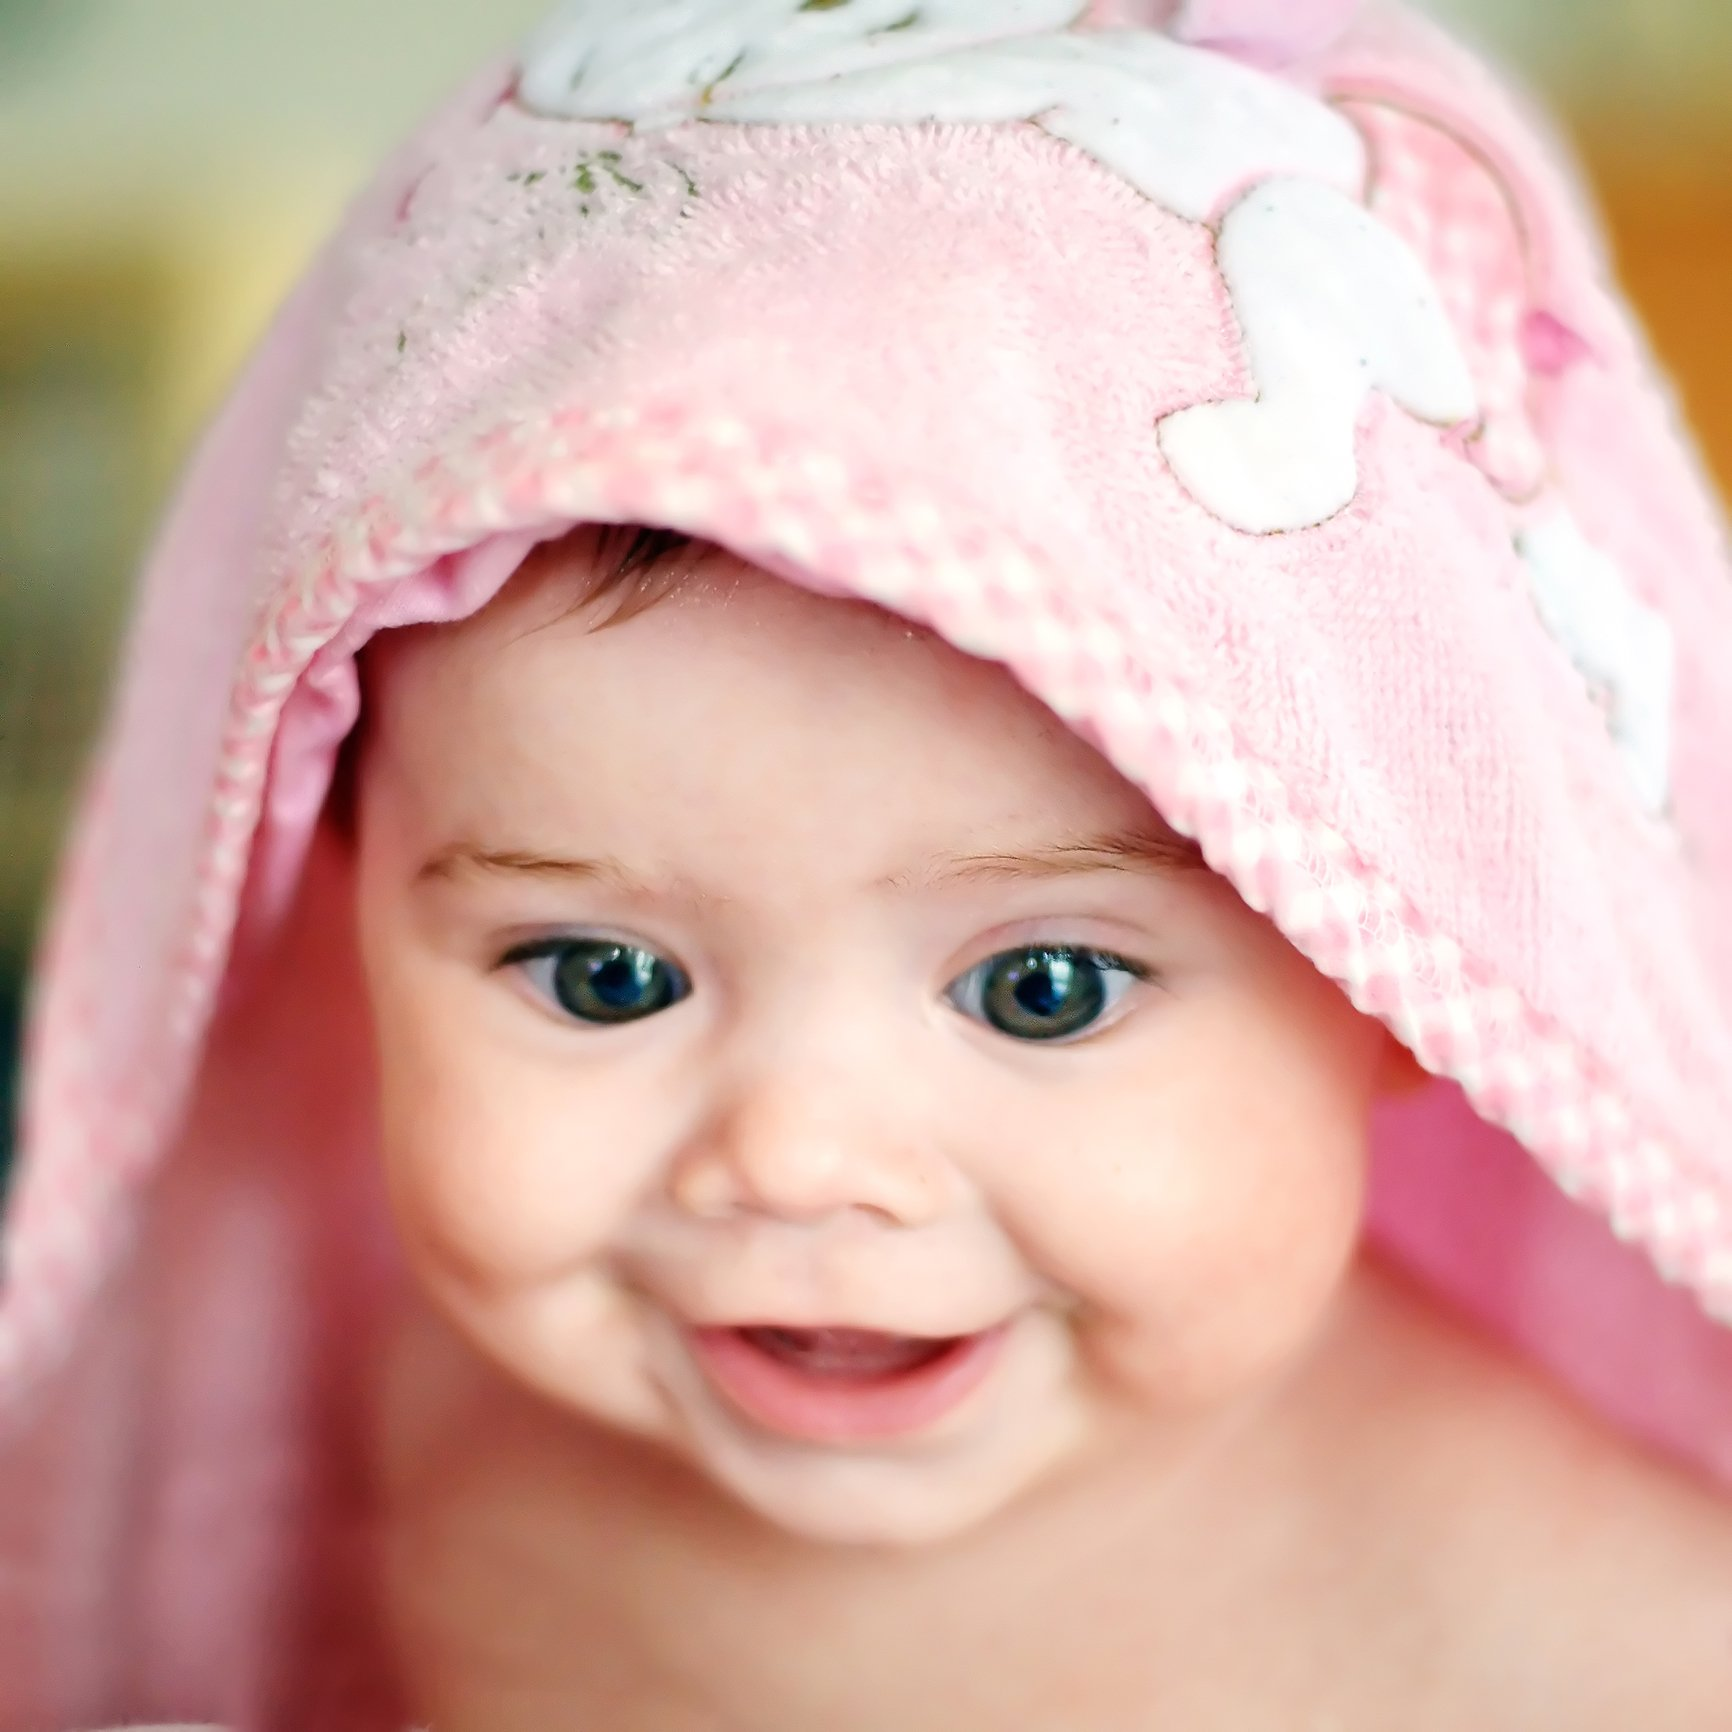 baby-and-towel-16915072